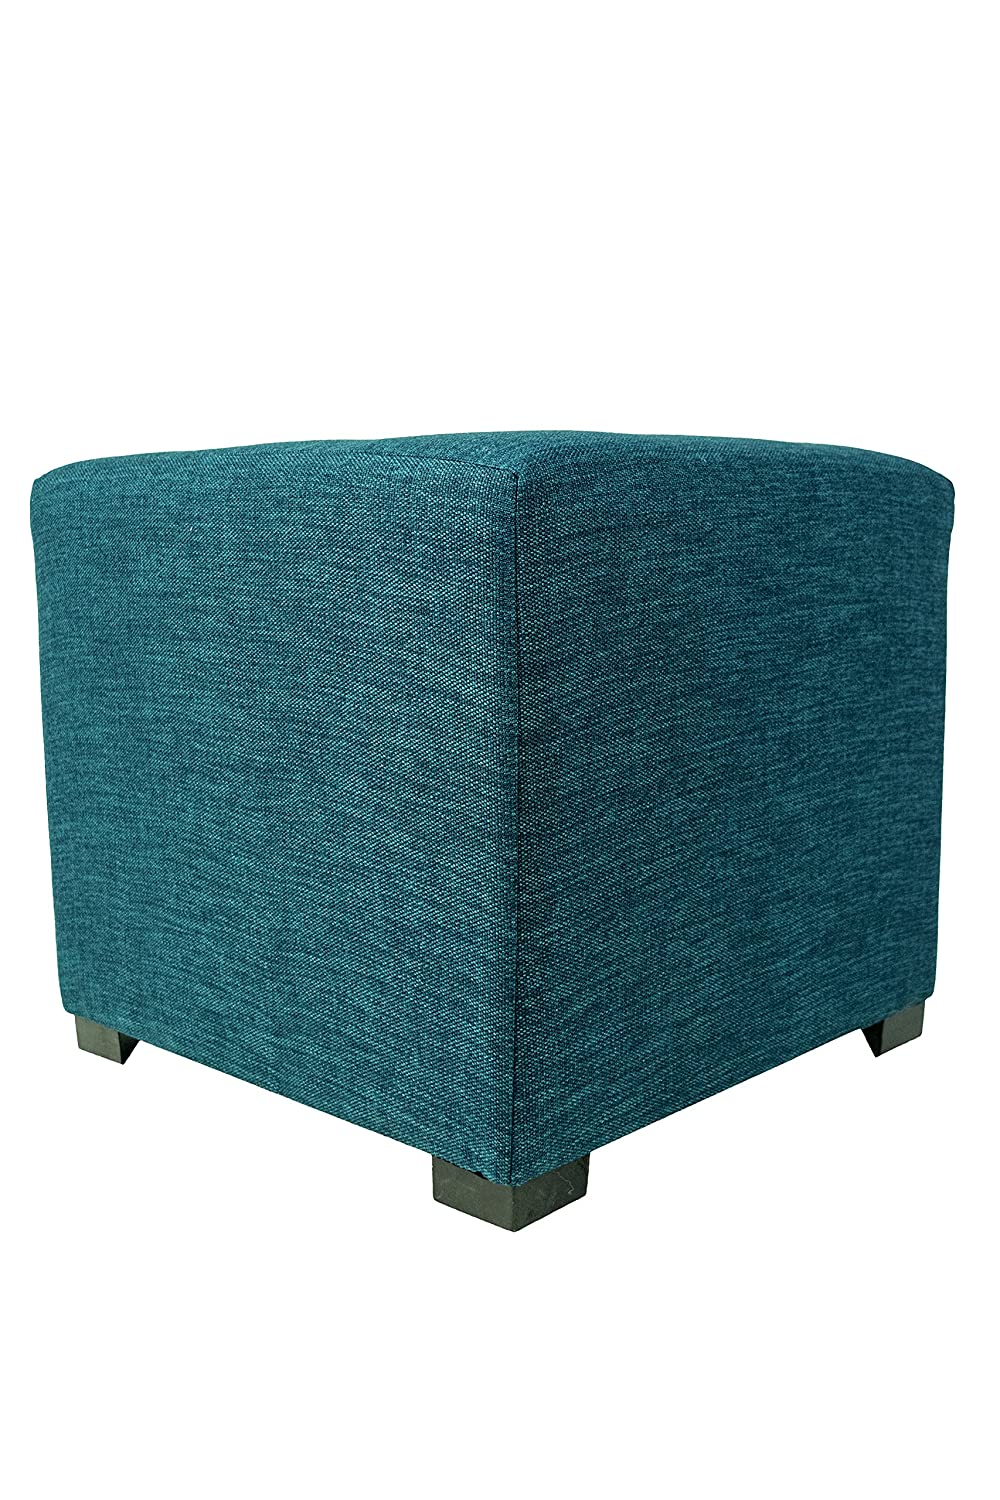 MJL Furniture Designs Merton Collection, Fabric Upholstered Modern Cube Foot Rest Ottoman with 4 Button Tufting, Key Largo Series, Zen Teal MERTON-KLARGOZENTEAL